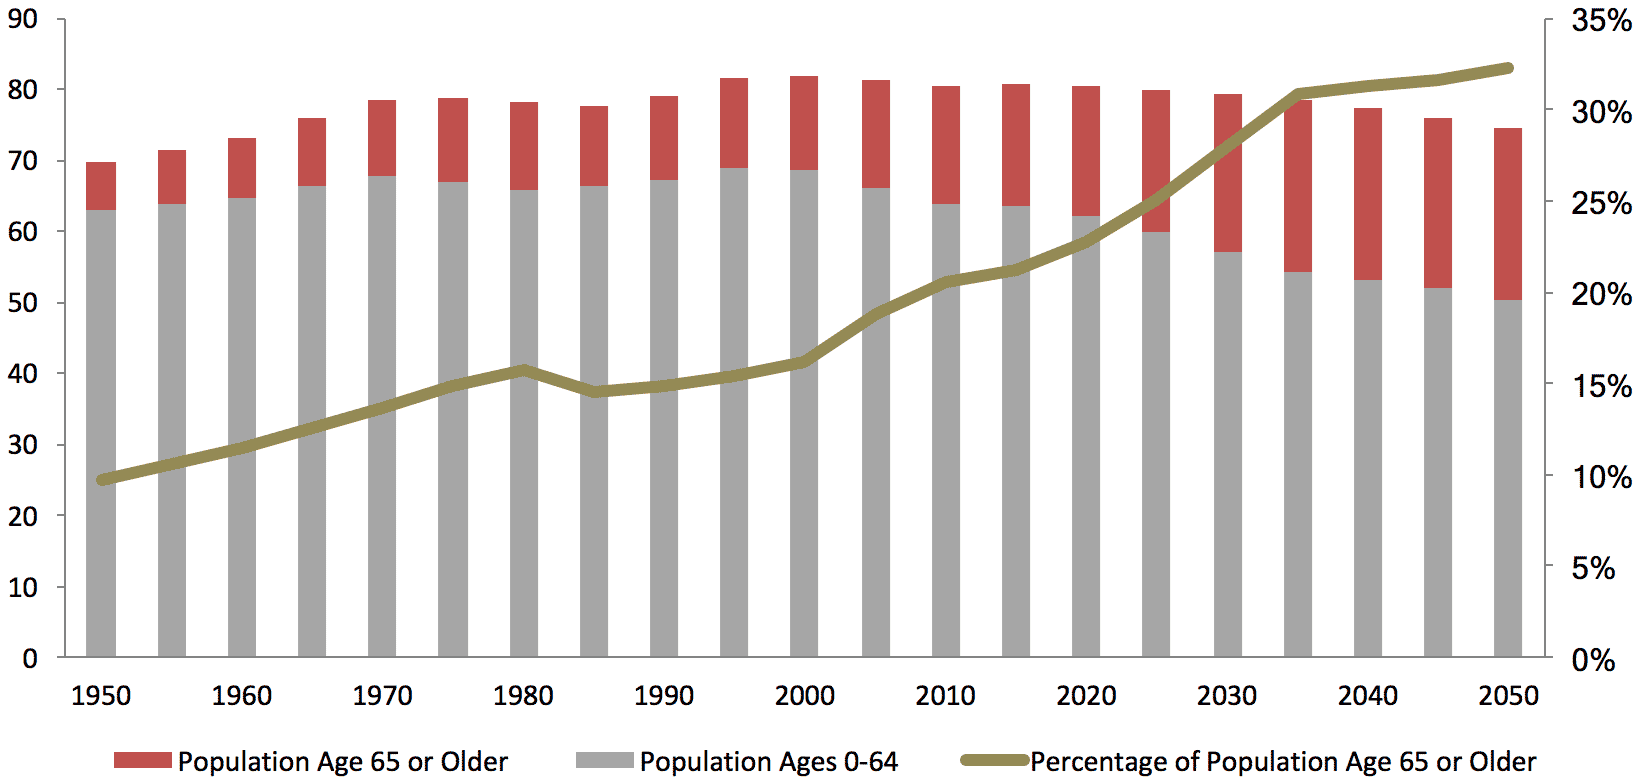 germany-population-by-age-group.png